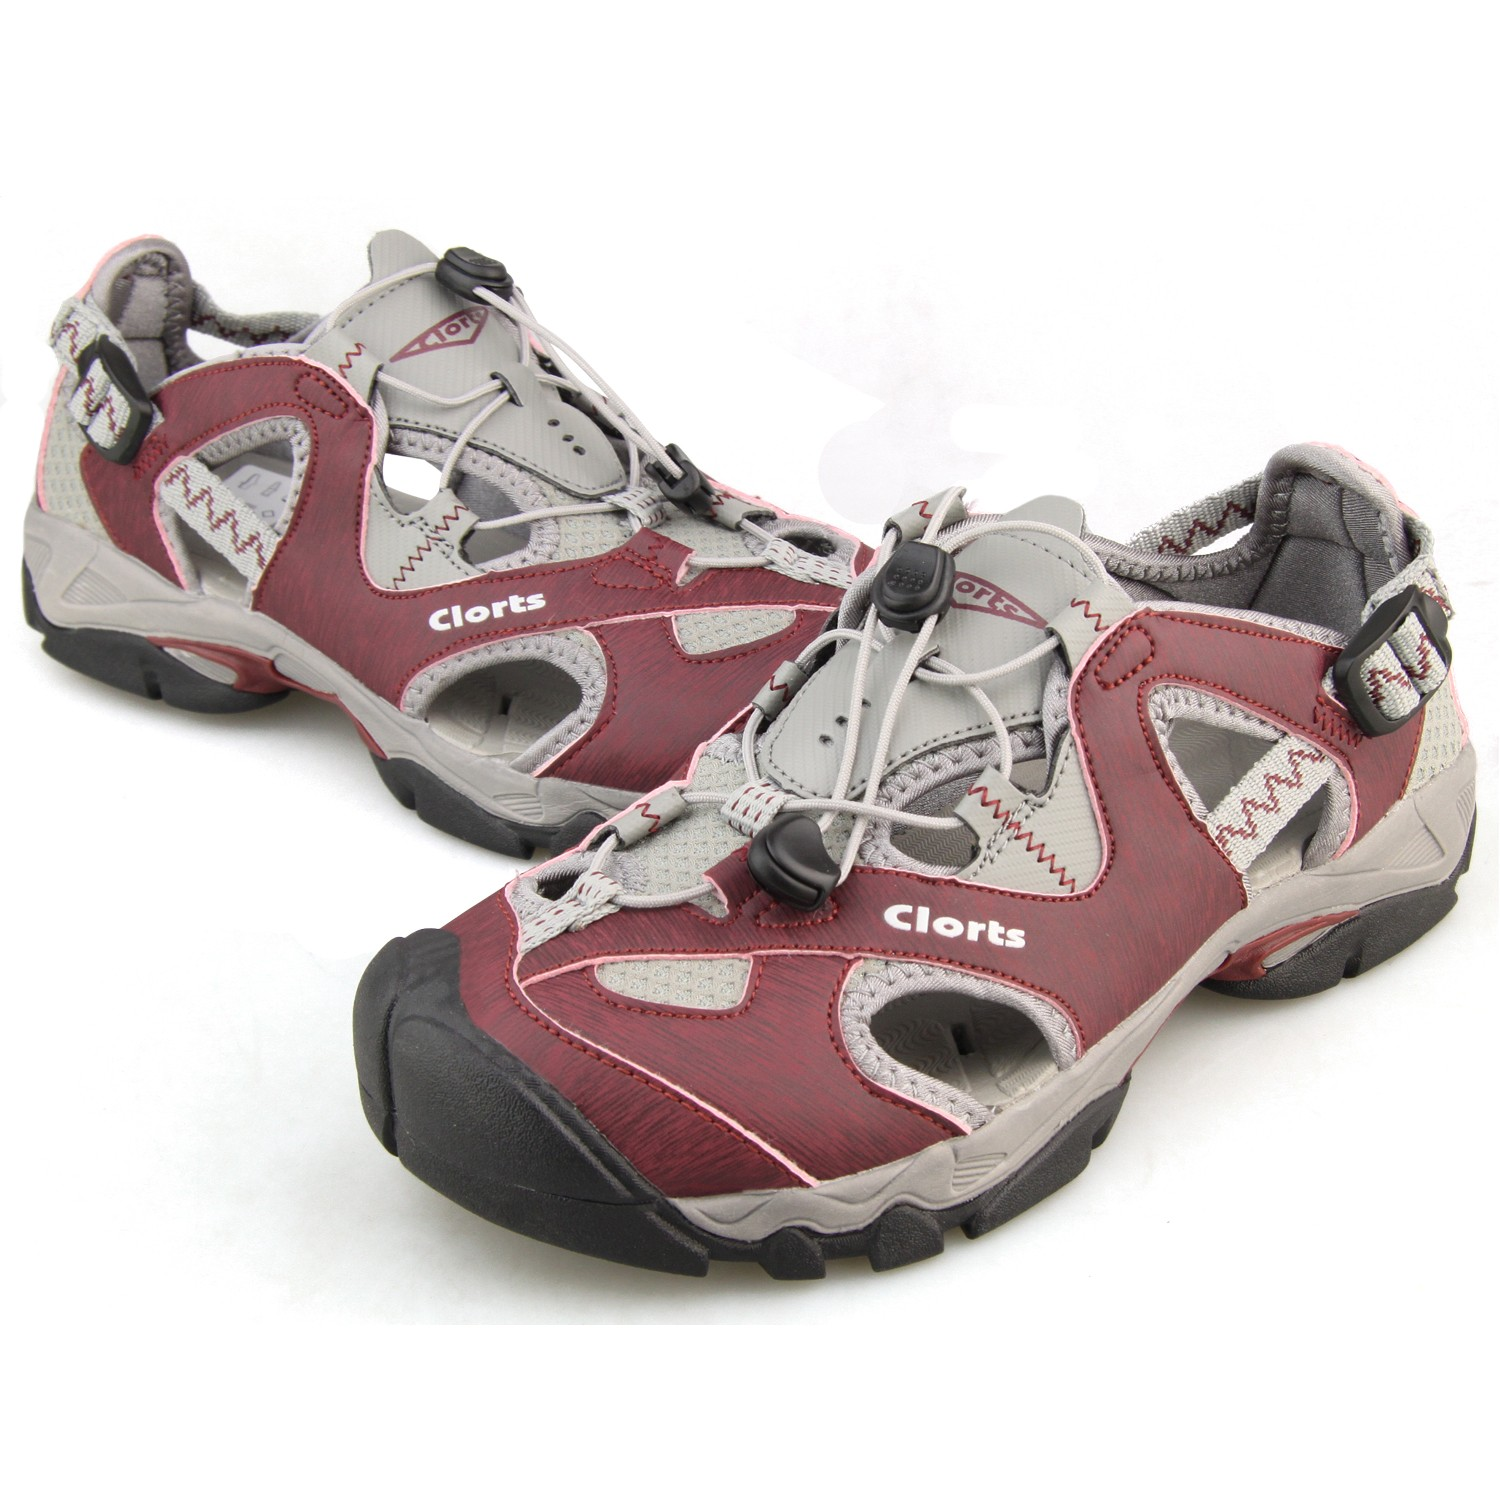 Outdoor Walking Water Sandals Manufacturers, Outdoor Walking Water Sandals Factory, Supply Outdoor Walking Water Sandals